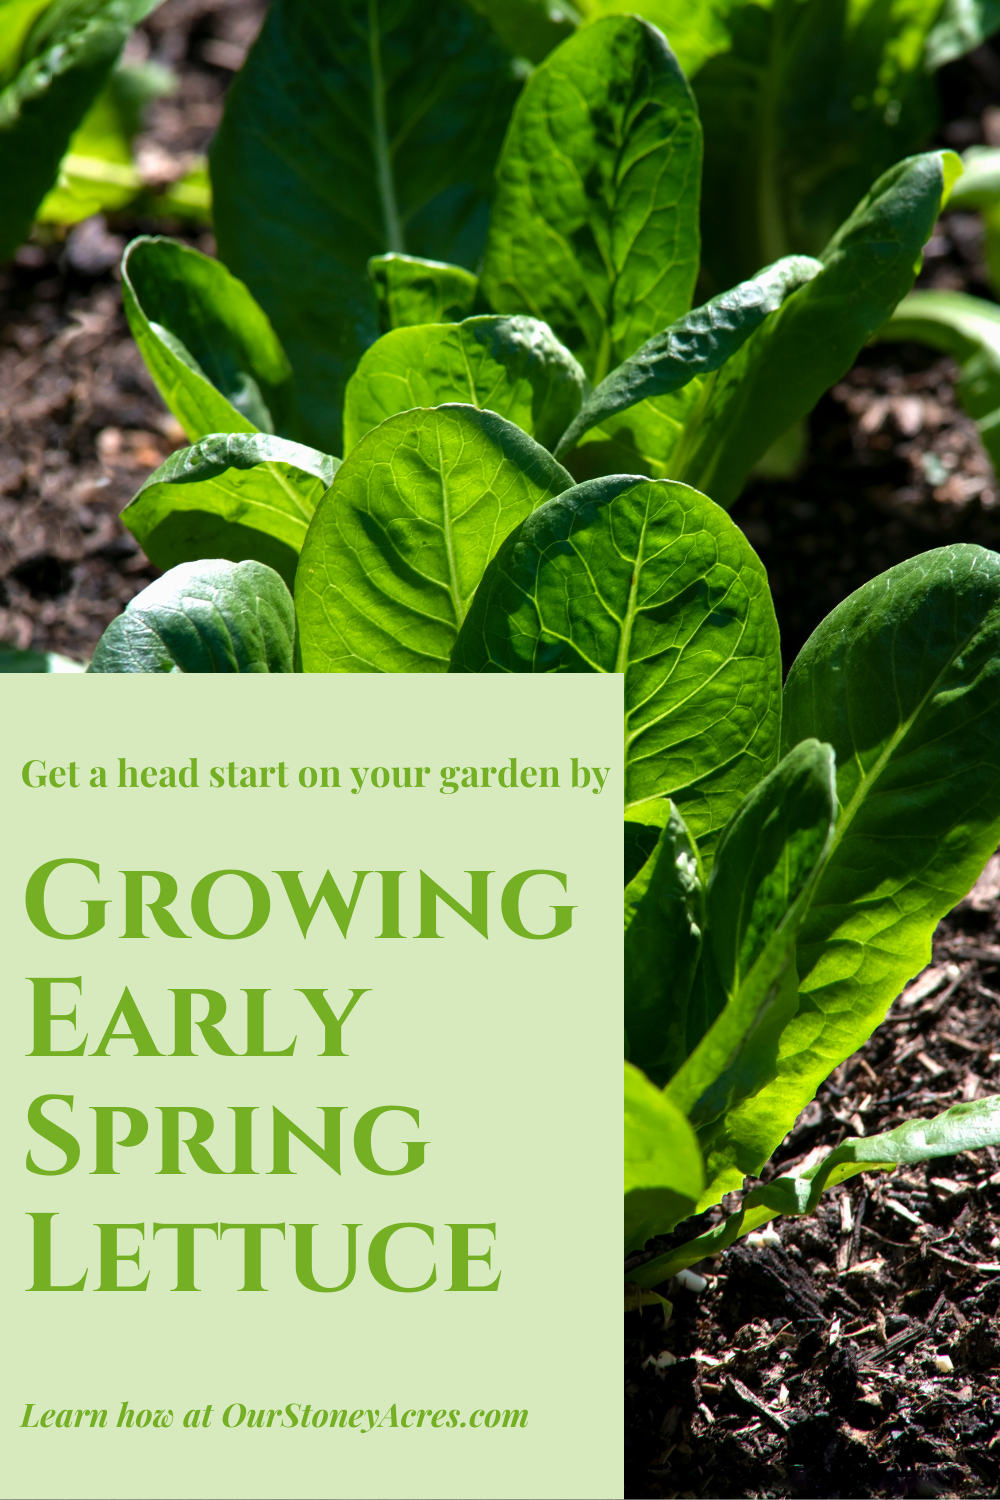 Growing Early Spring Lettuce